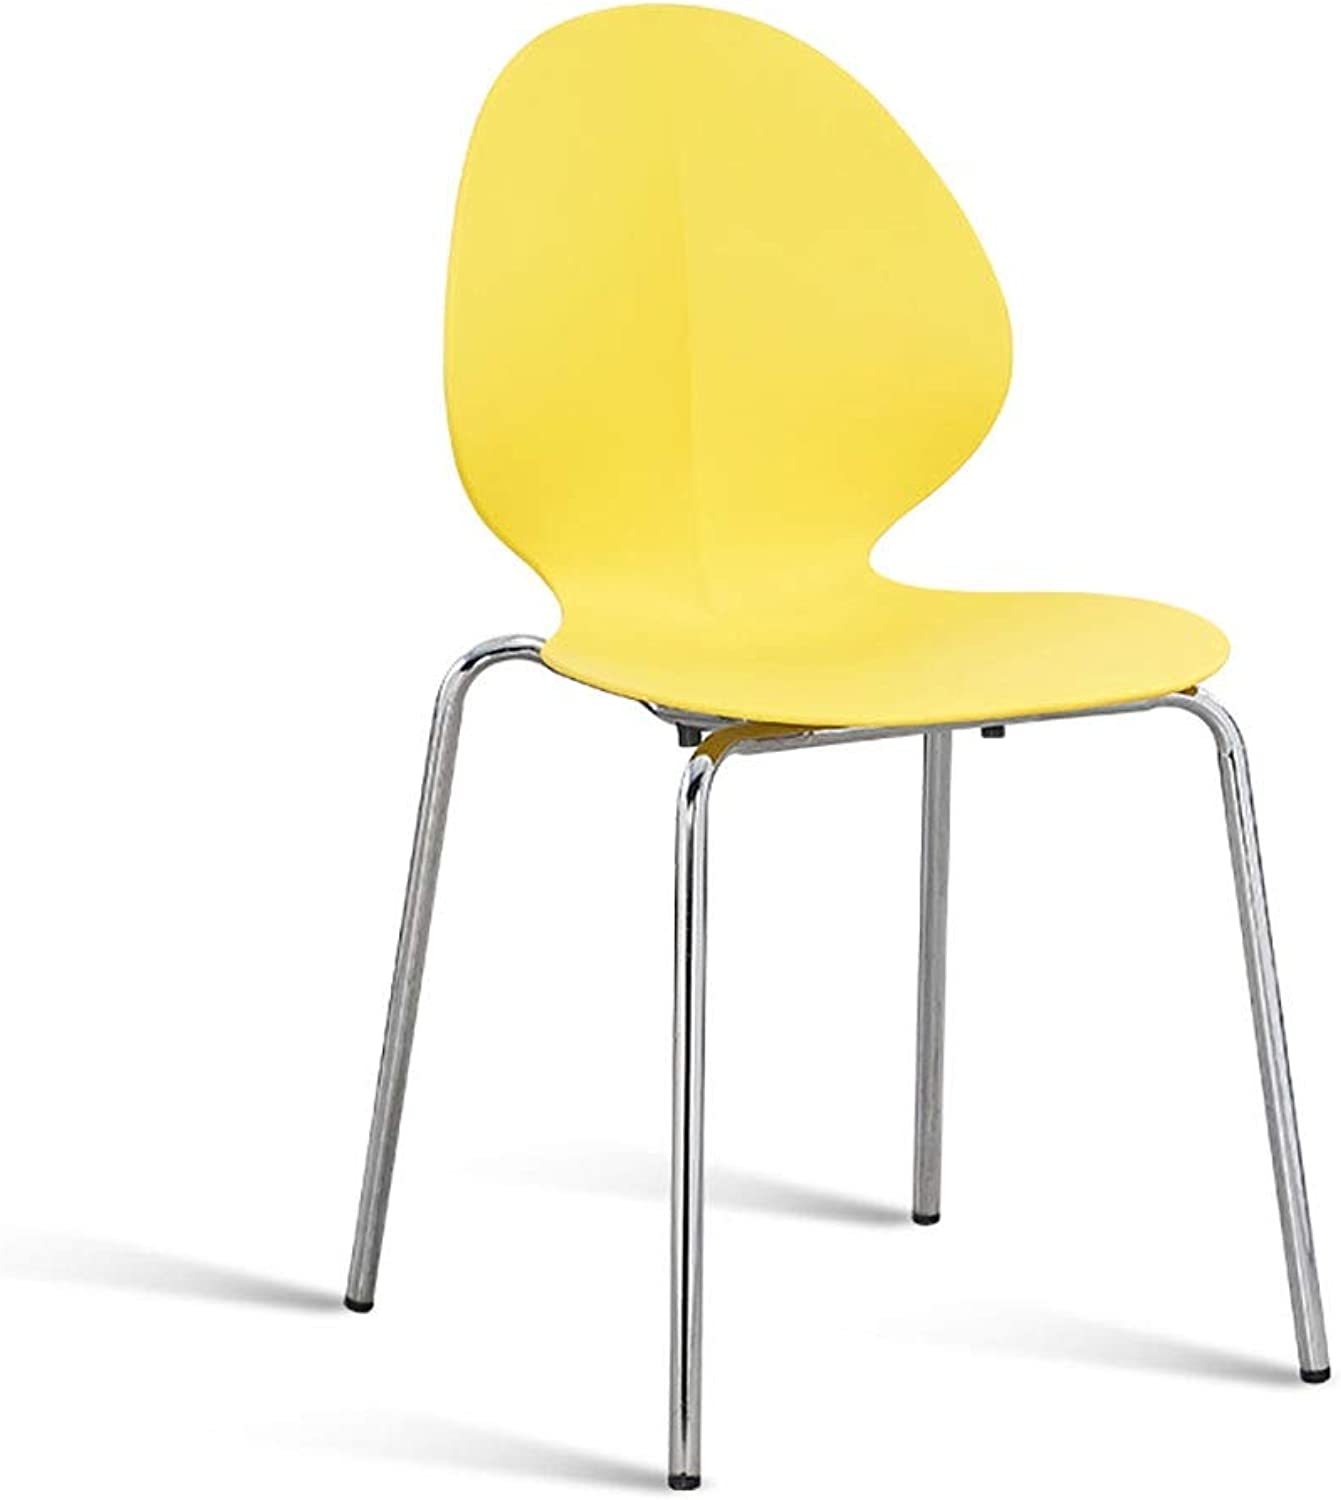 Wrought Iron Back Chair Home Iron Leg Dining Chair Adult Tea Shop Fast Food Stool Simple Chair (color   Yellow)